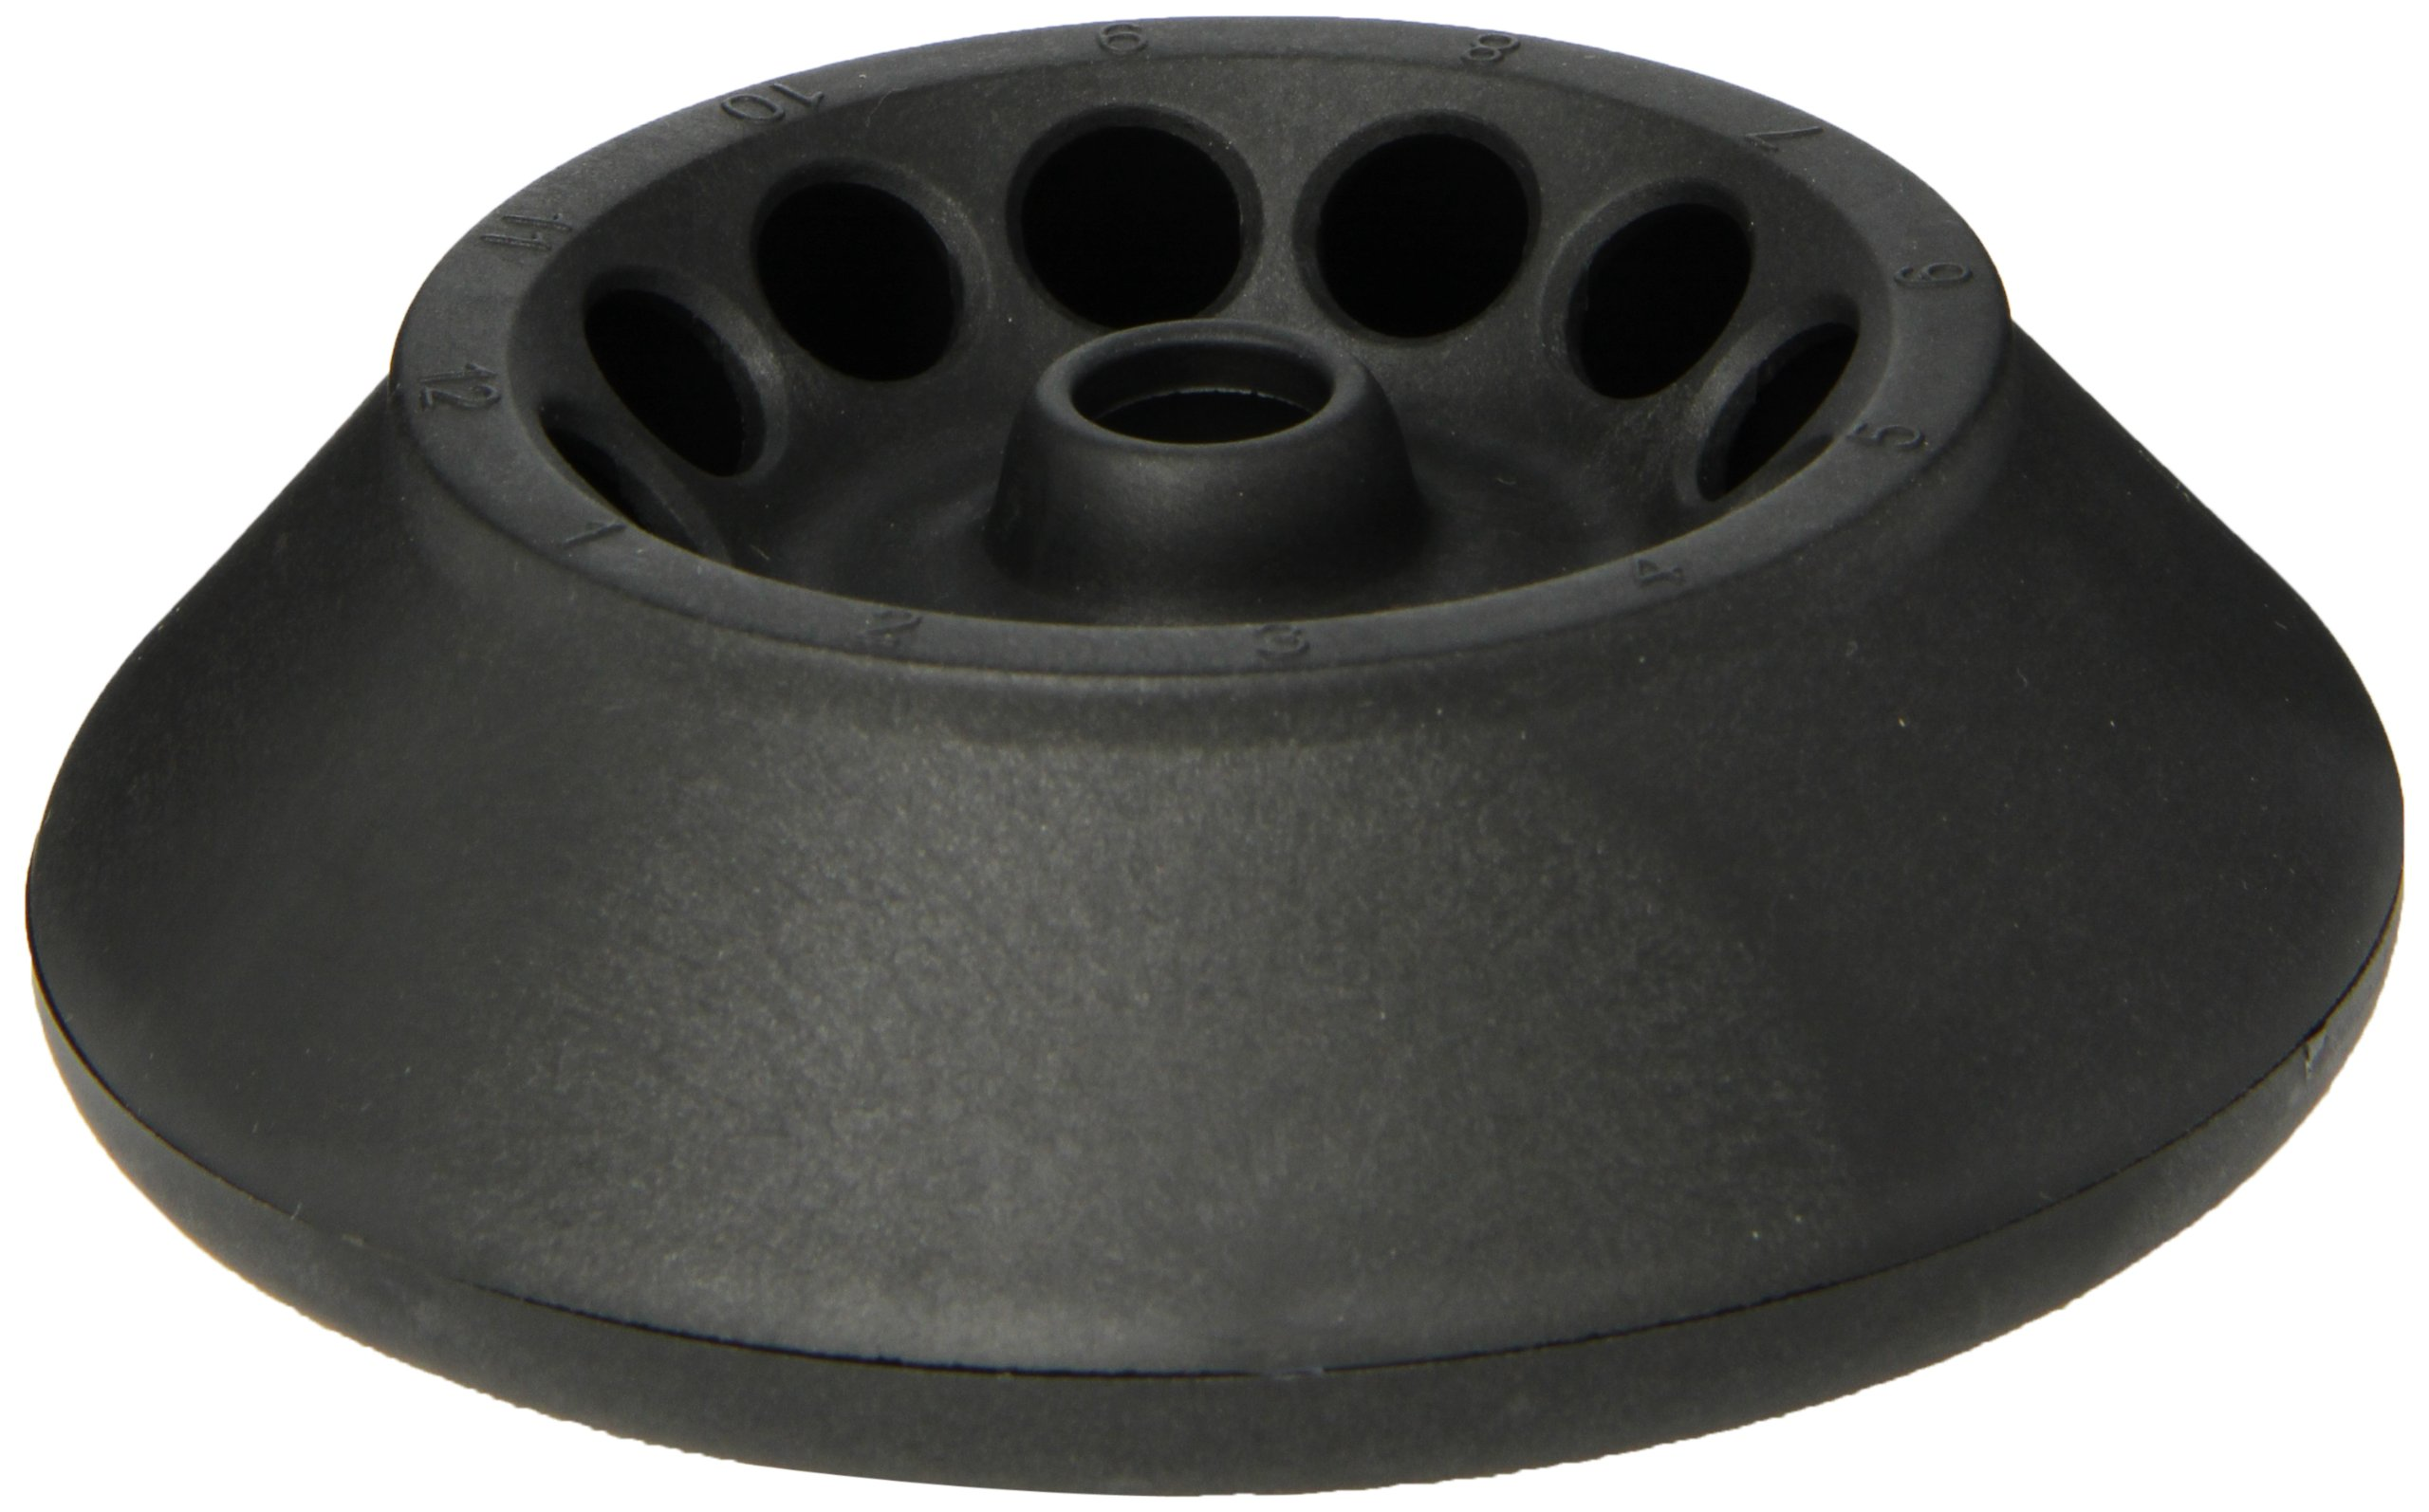 Heathrow Scientific 12-Place Standard Rotor with Cover and Knob, 1.5/2ml Tube Capacity